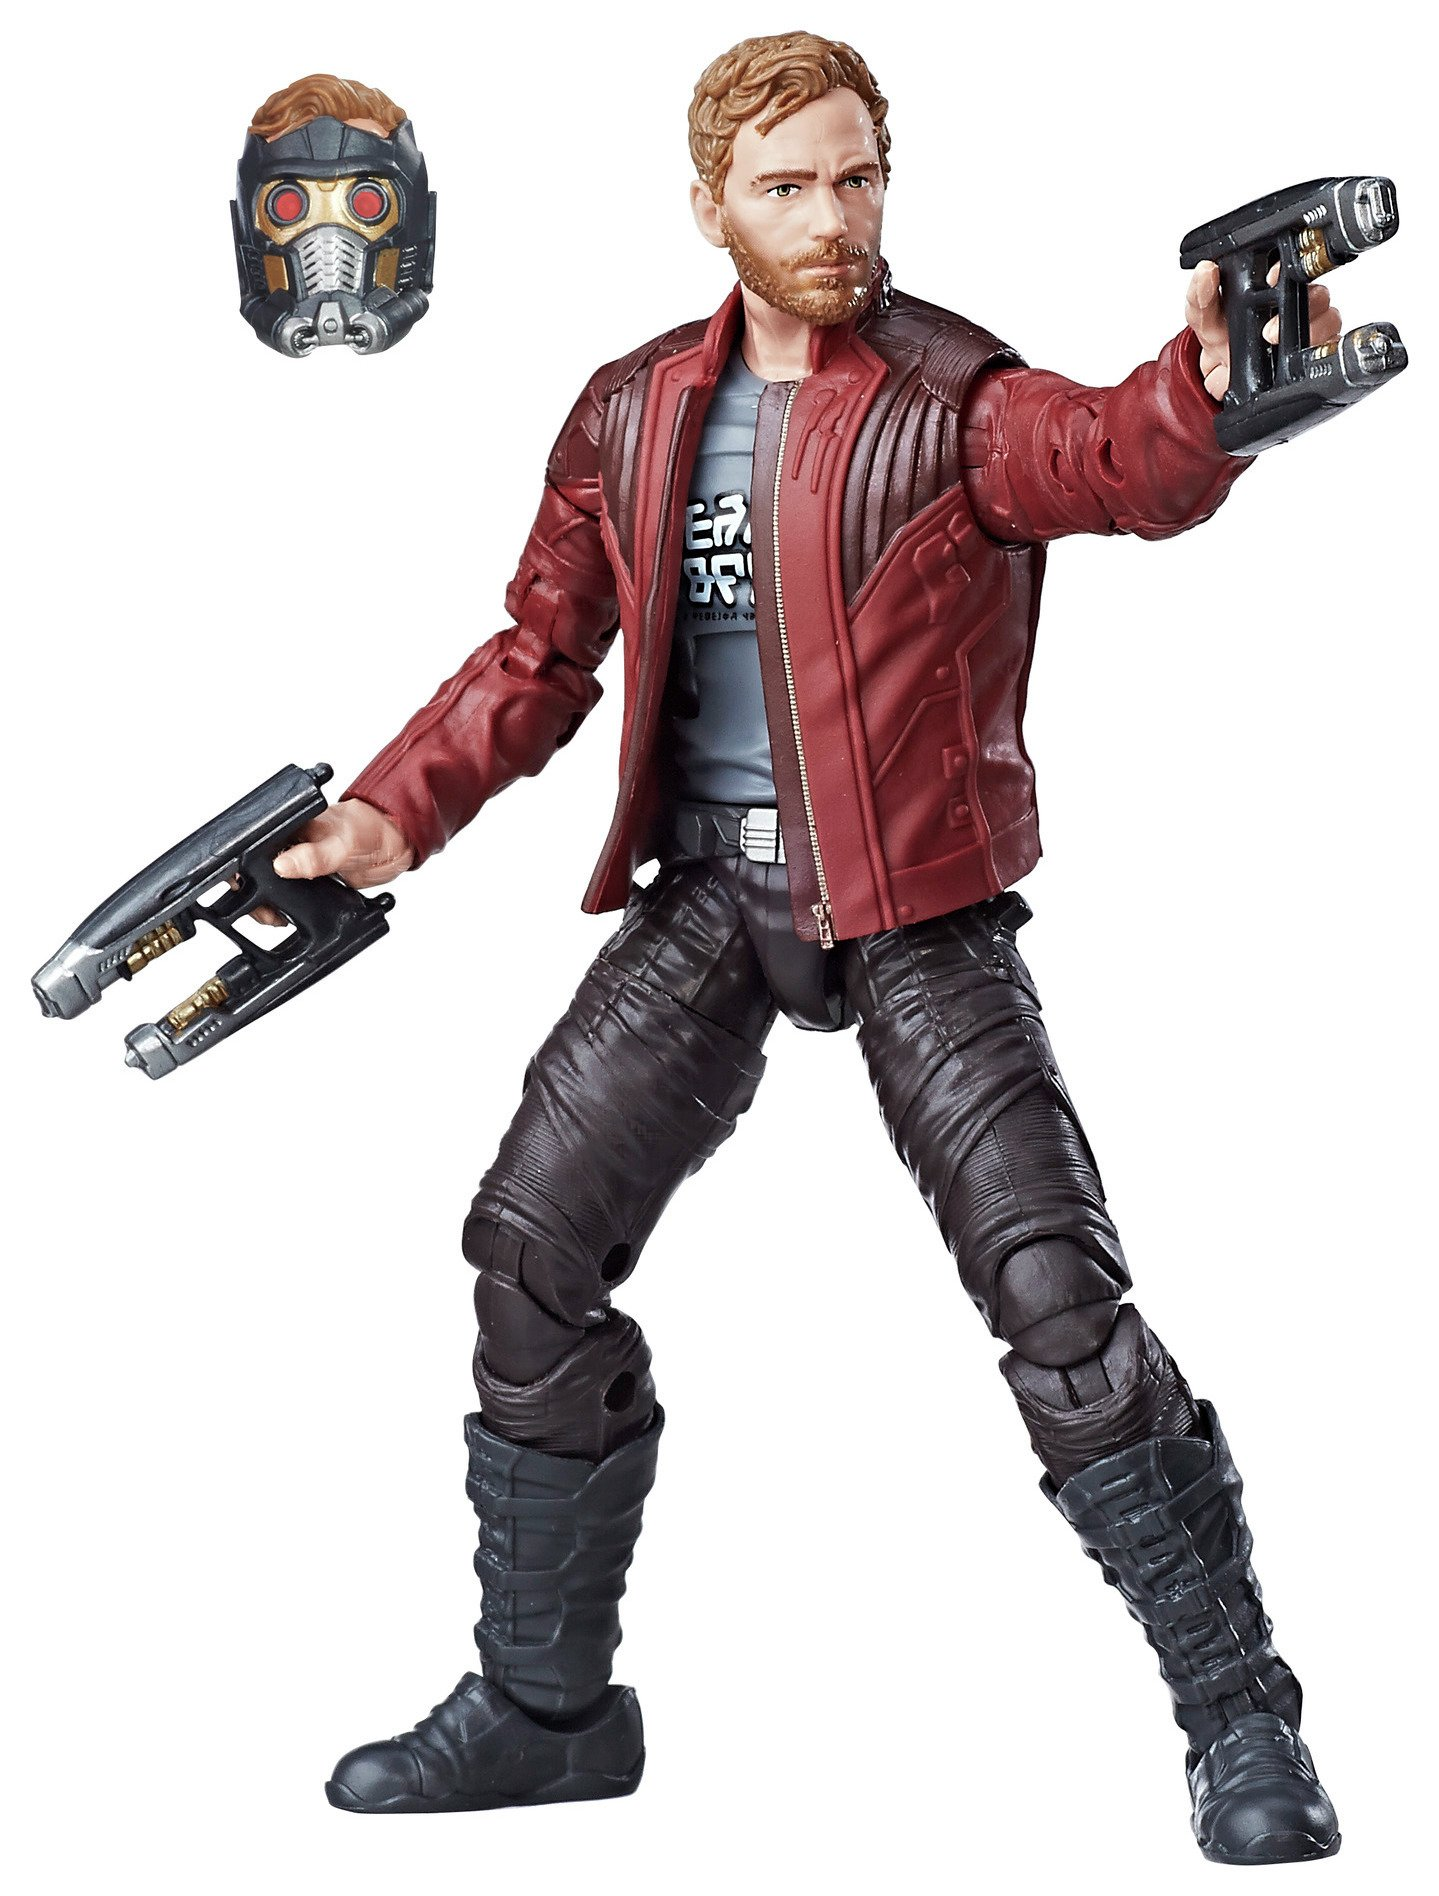 Image of Marvel Guardians of the Galaxy 6-inch Legends Star-Lord